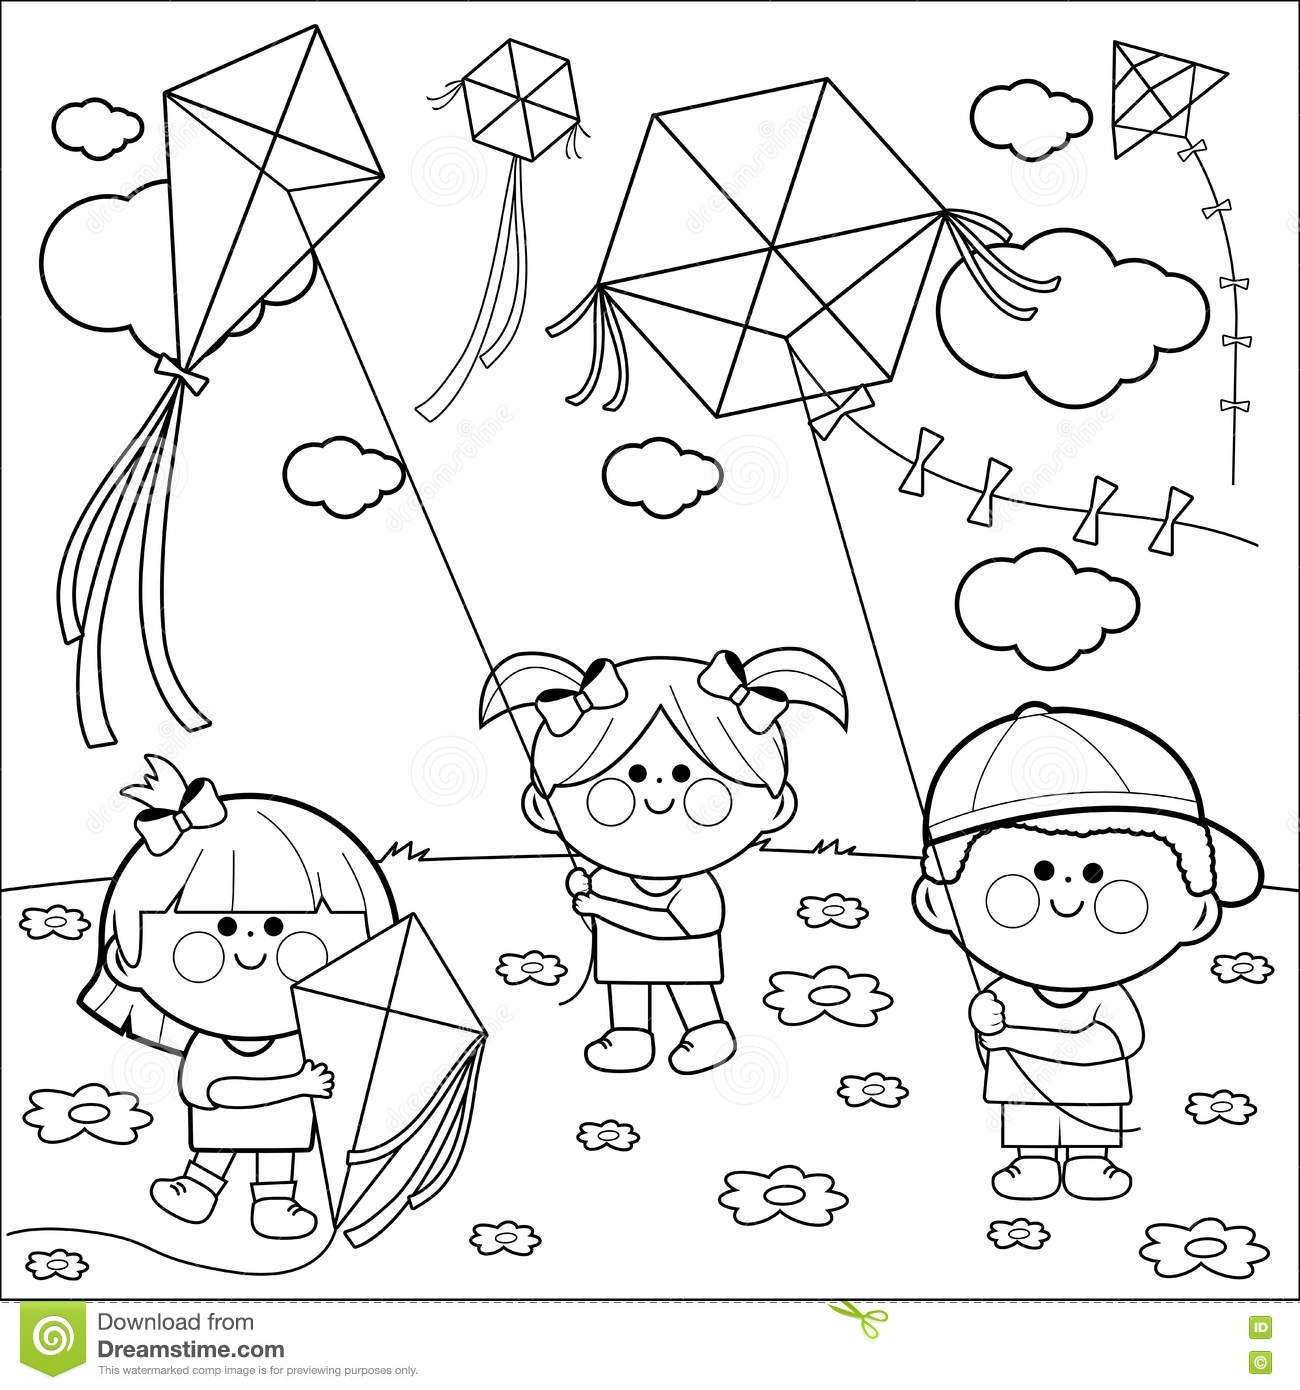 Guatemala Coloring Worksheet